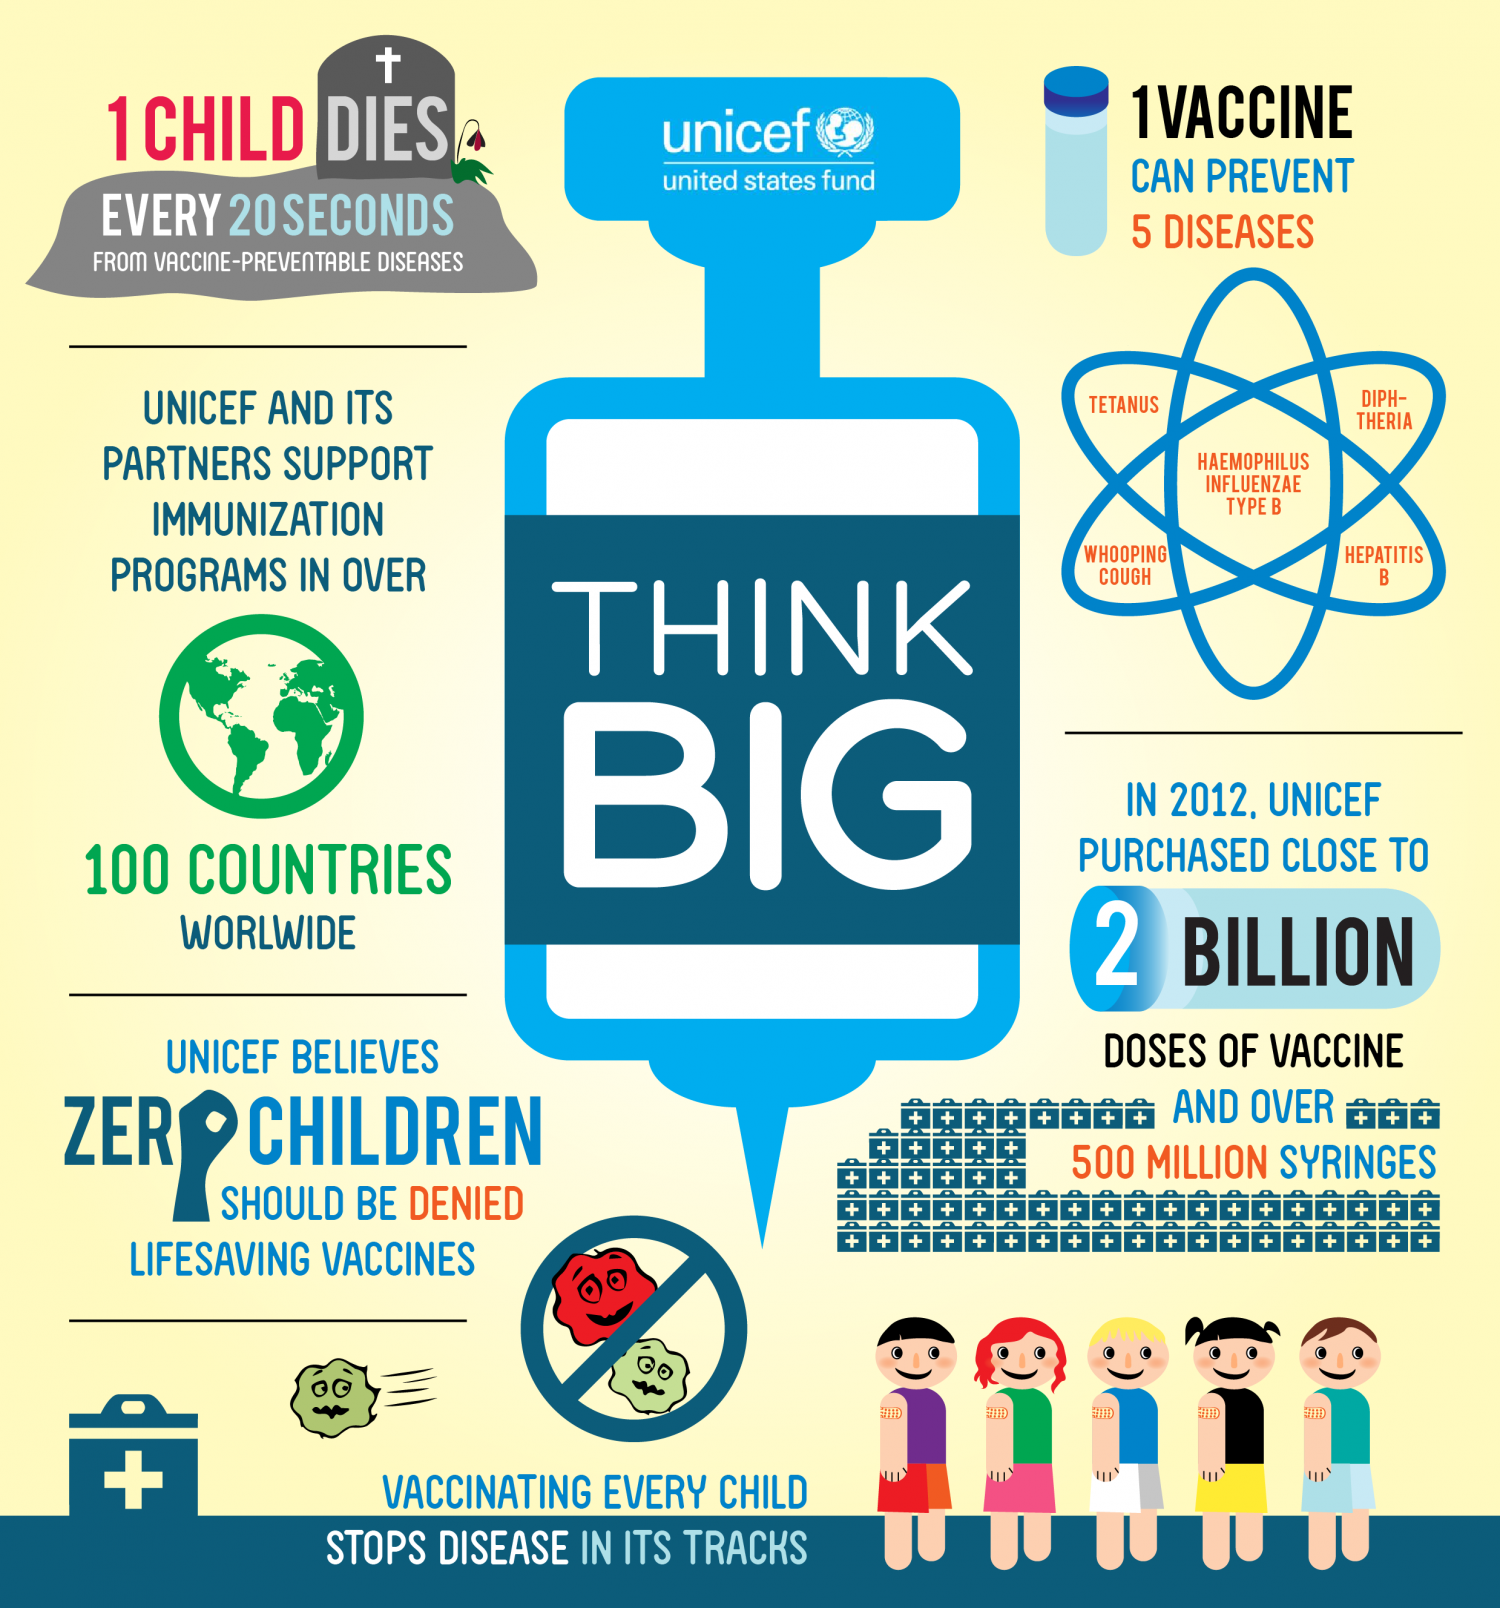 Unicef - one child one vaccine Infographic